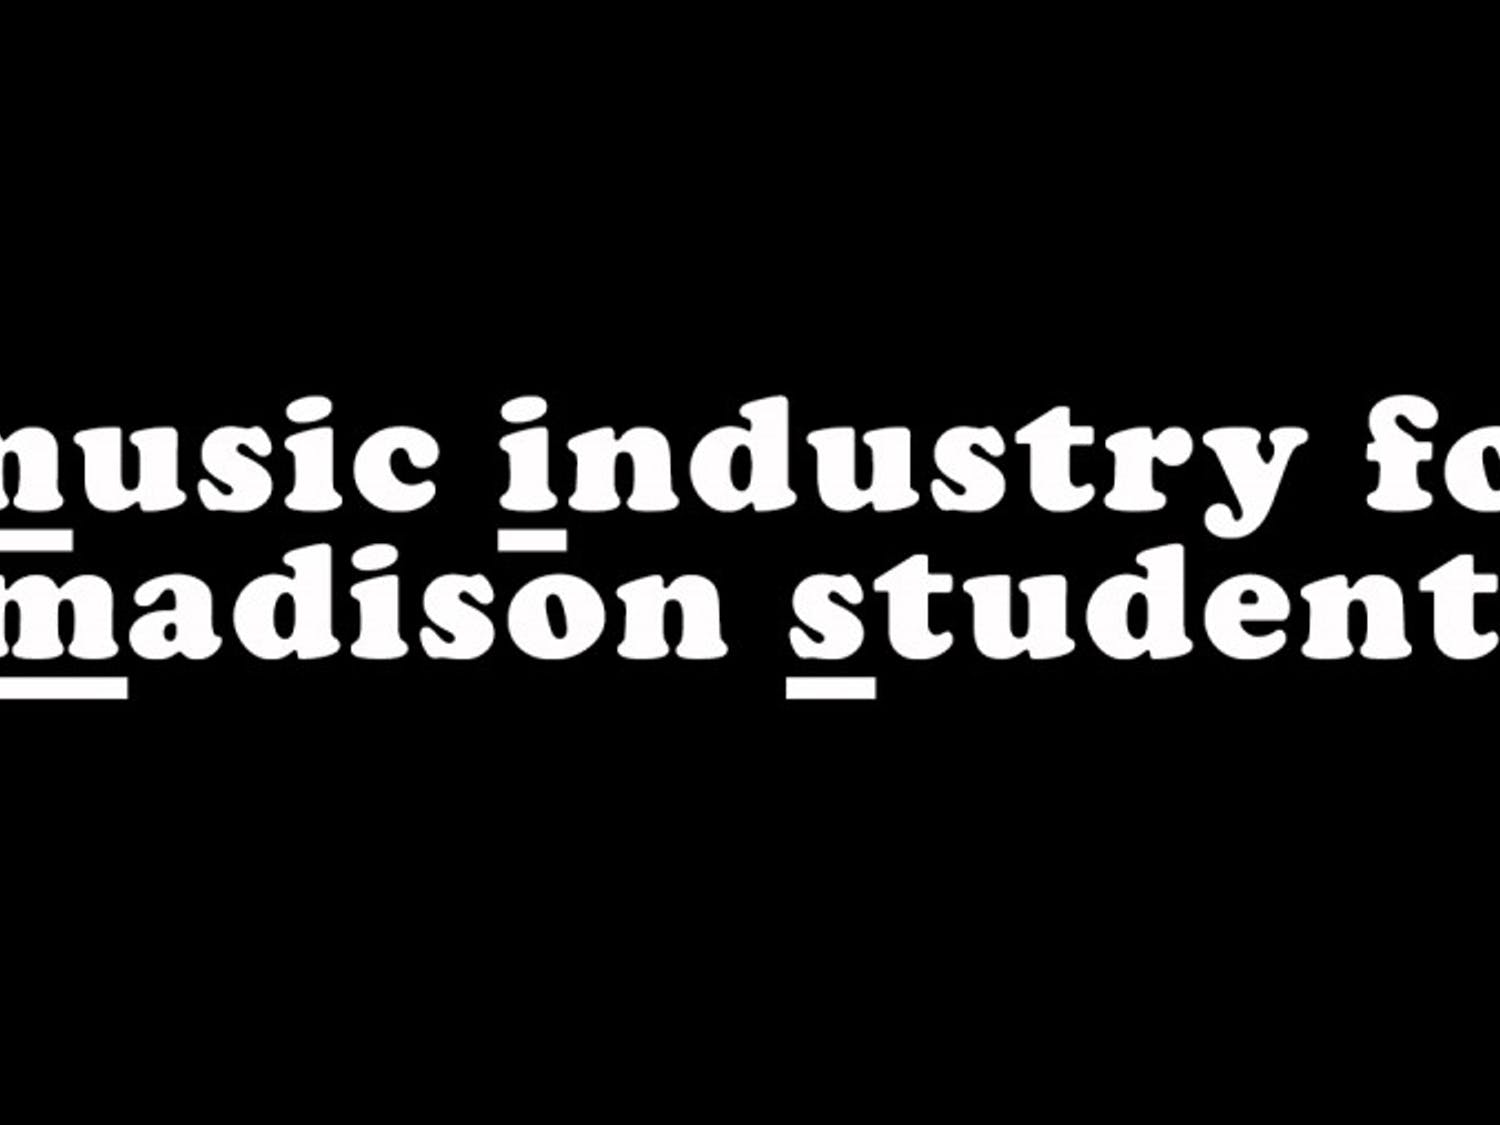 A new student organization strives to prepare UW students for the music industry post-college life.